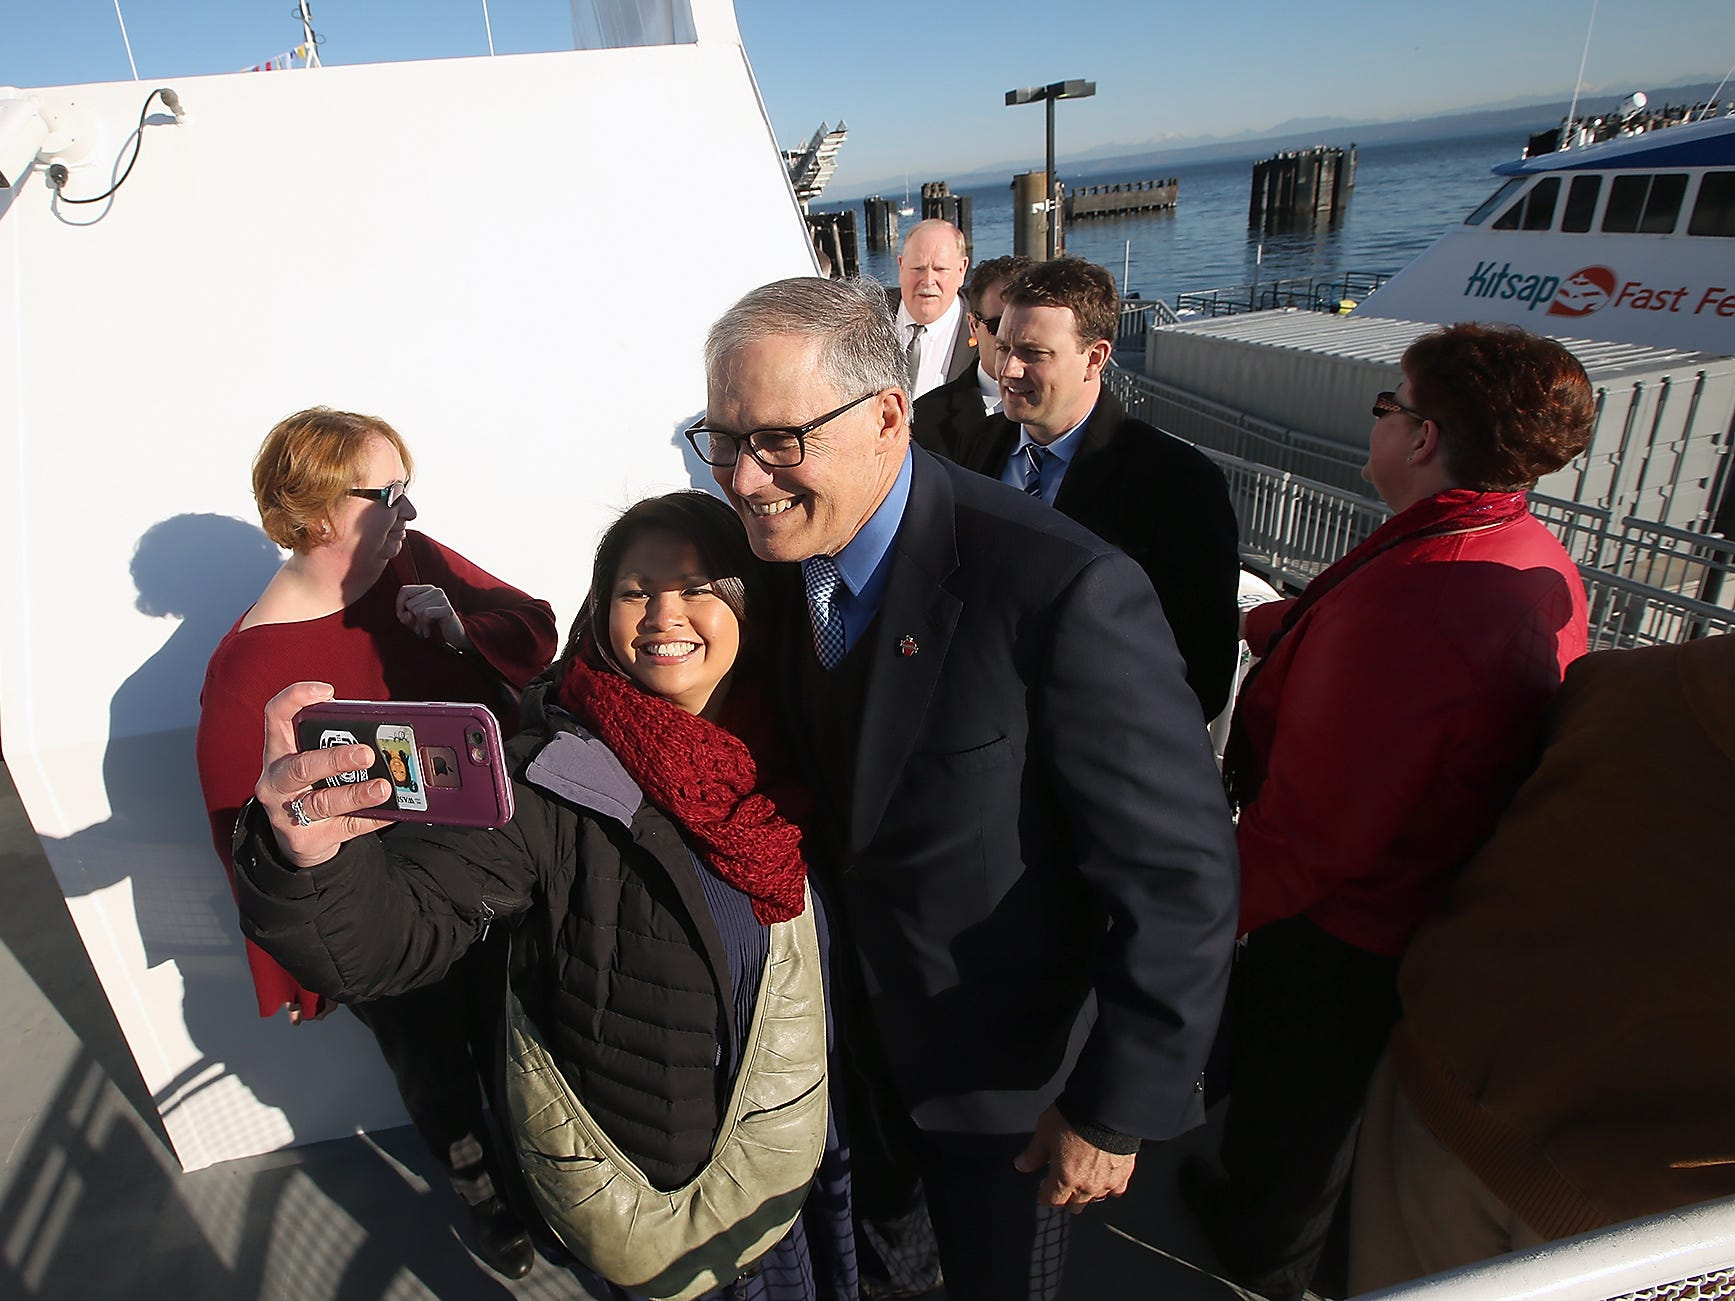 Theresa Smith, of Bremerton, takes a quick selfie with Governor Jay Inslee as he tours the M/V Finest during the Grand Opening at the Port of Kingston for Kitsap Transit's new fast-ferry service between Kingston and Seattle on Monday, November 19, 2018.